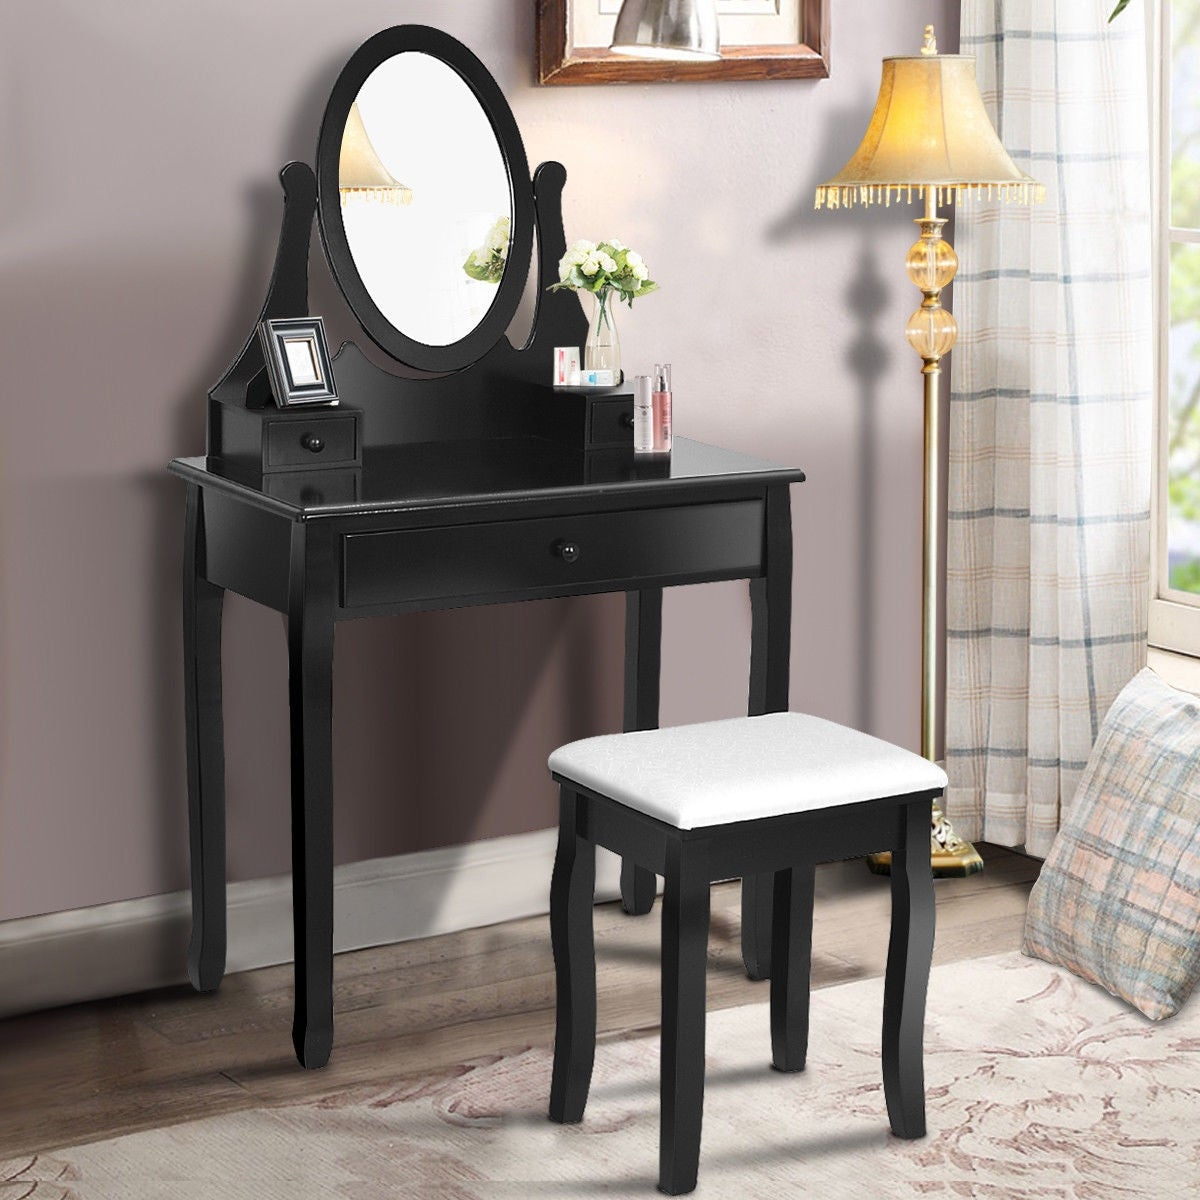 Gymax Bathroom Wooden Mirrored Makeup Vanity Set Stool Table Black Free Shipping Today 22971633